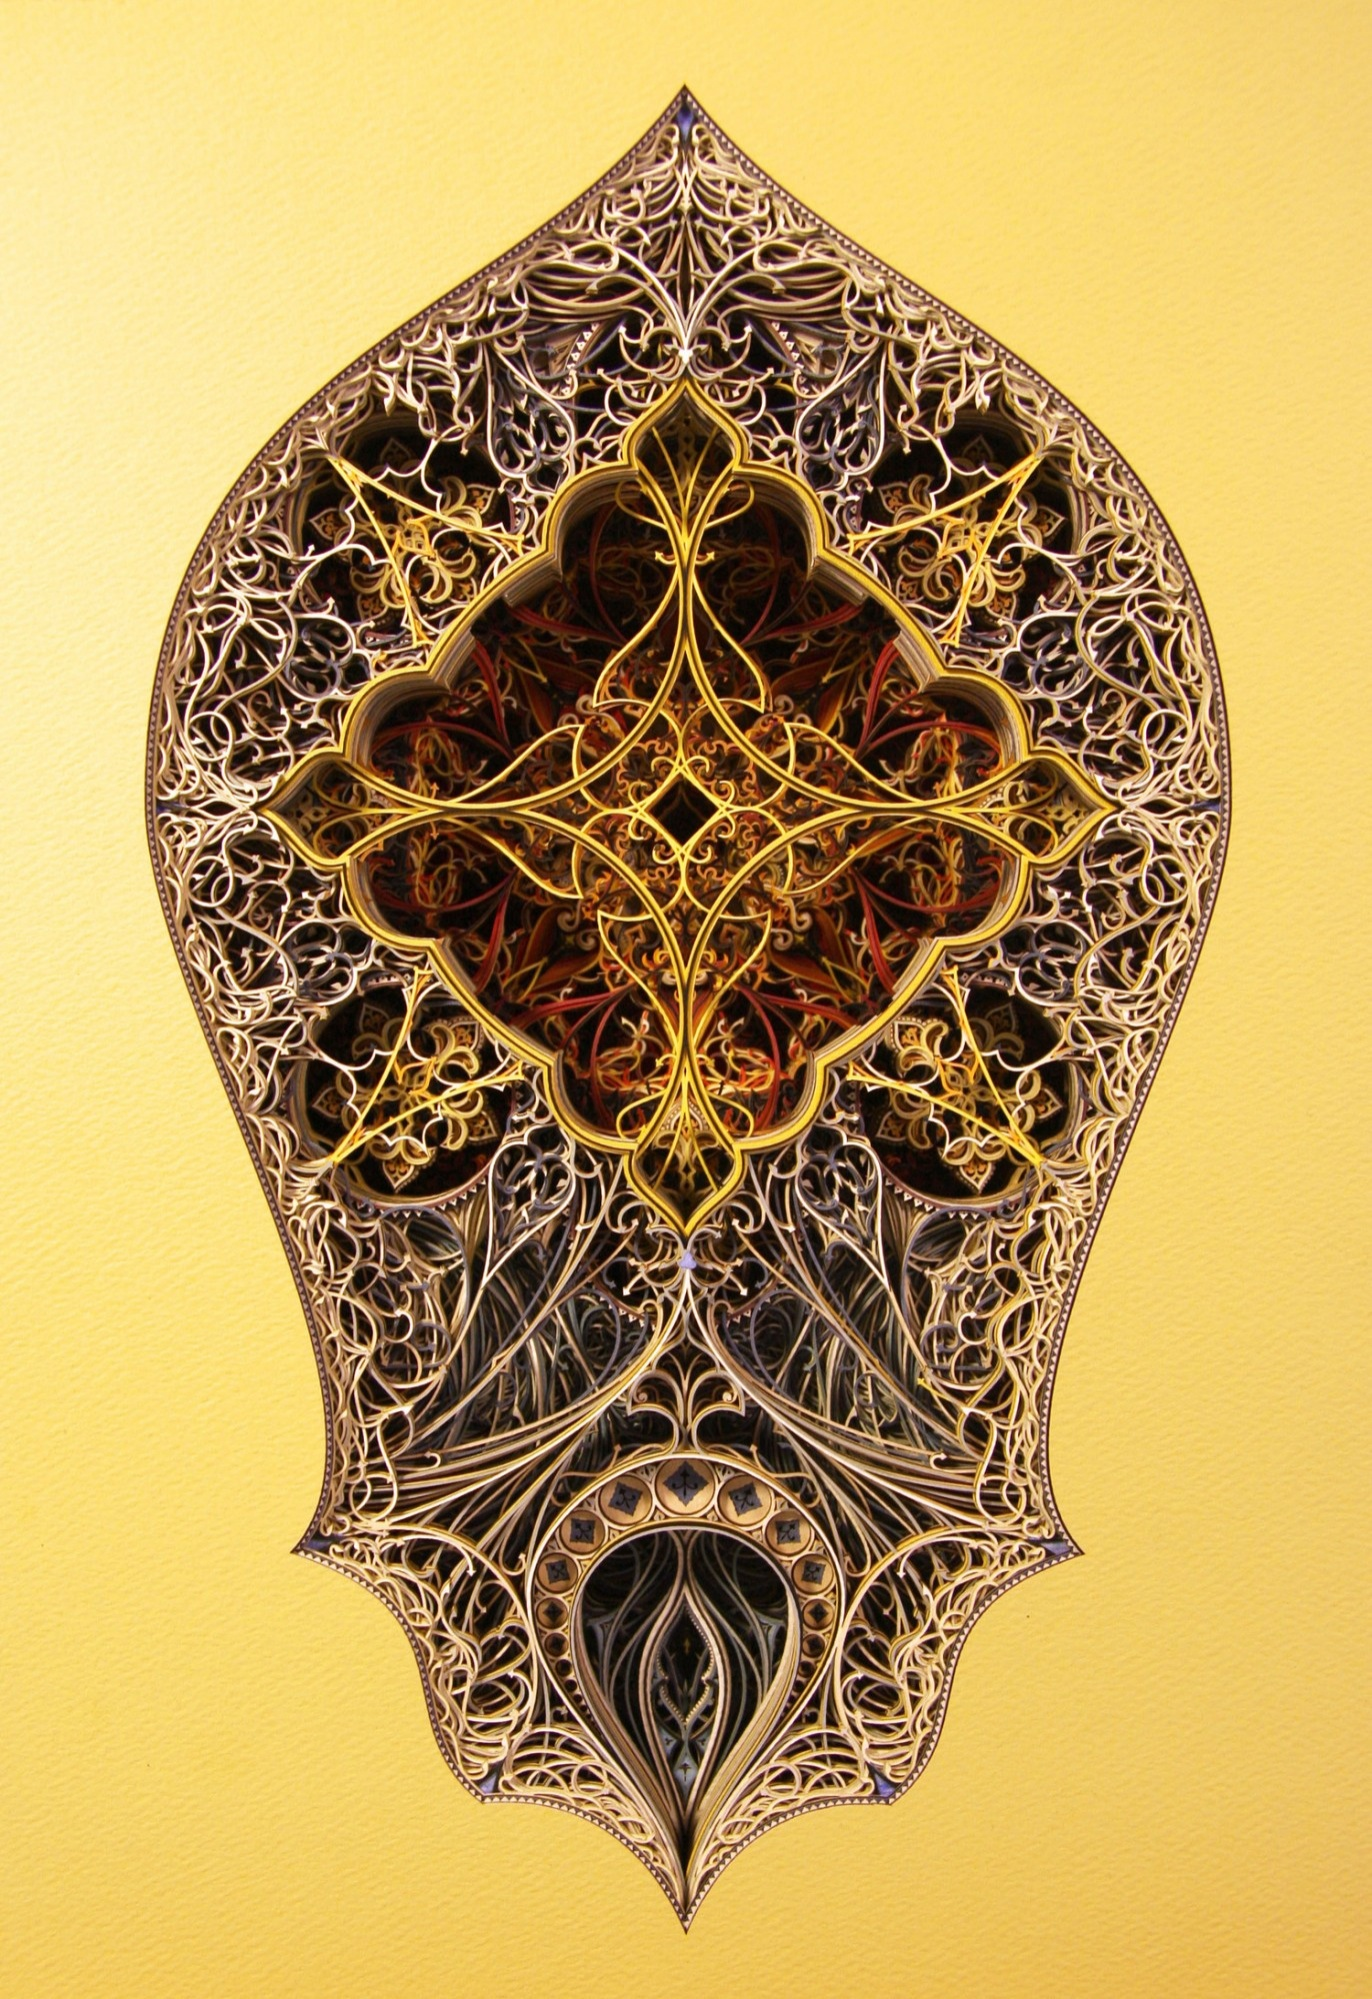 intricate-stained-glass-windows-colorful-laser-cut-paper-eric-standley-arch6-strictlypaper